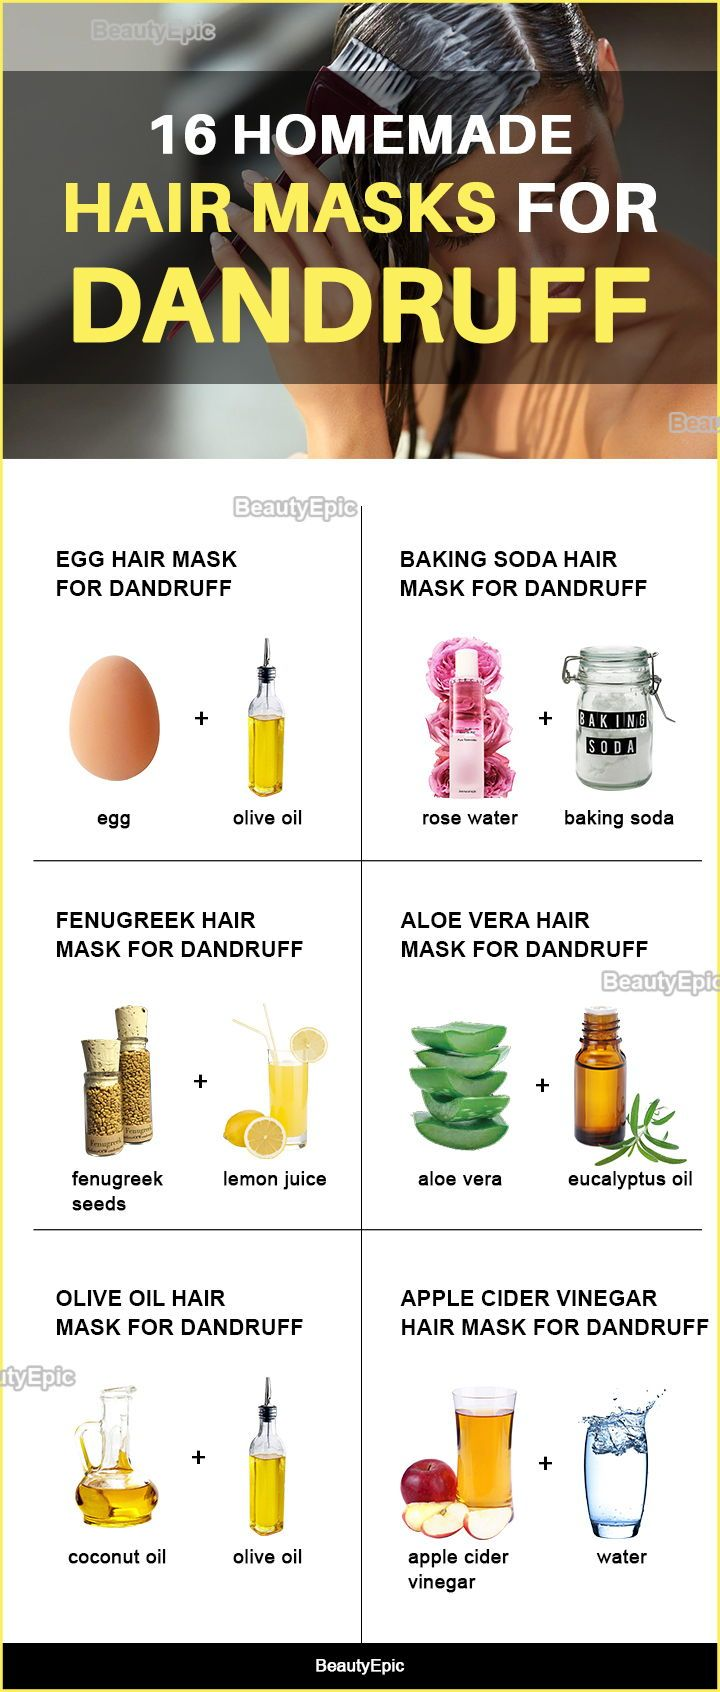 Homemade Hair Masks for Dandruff Recipes and How to Apply